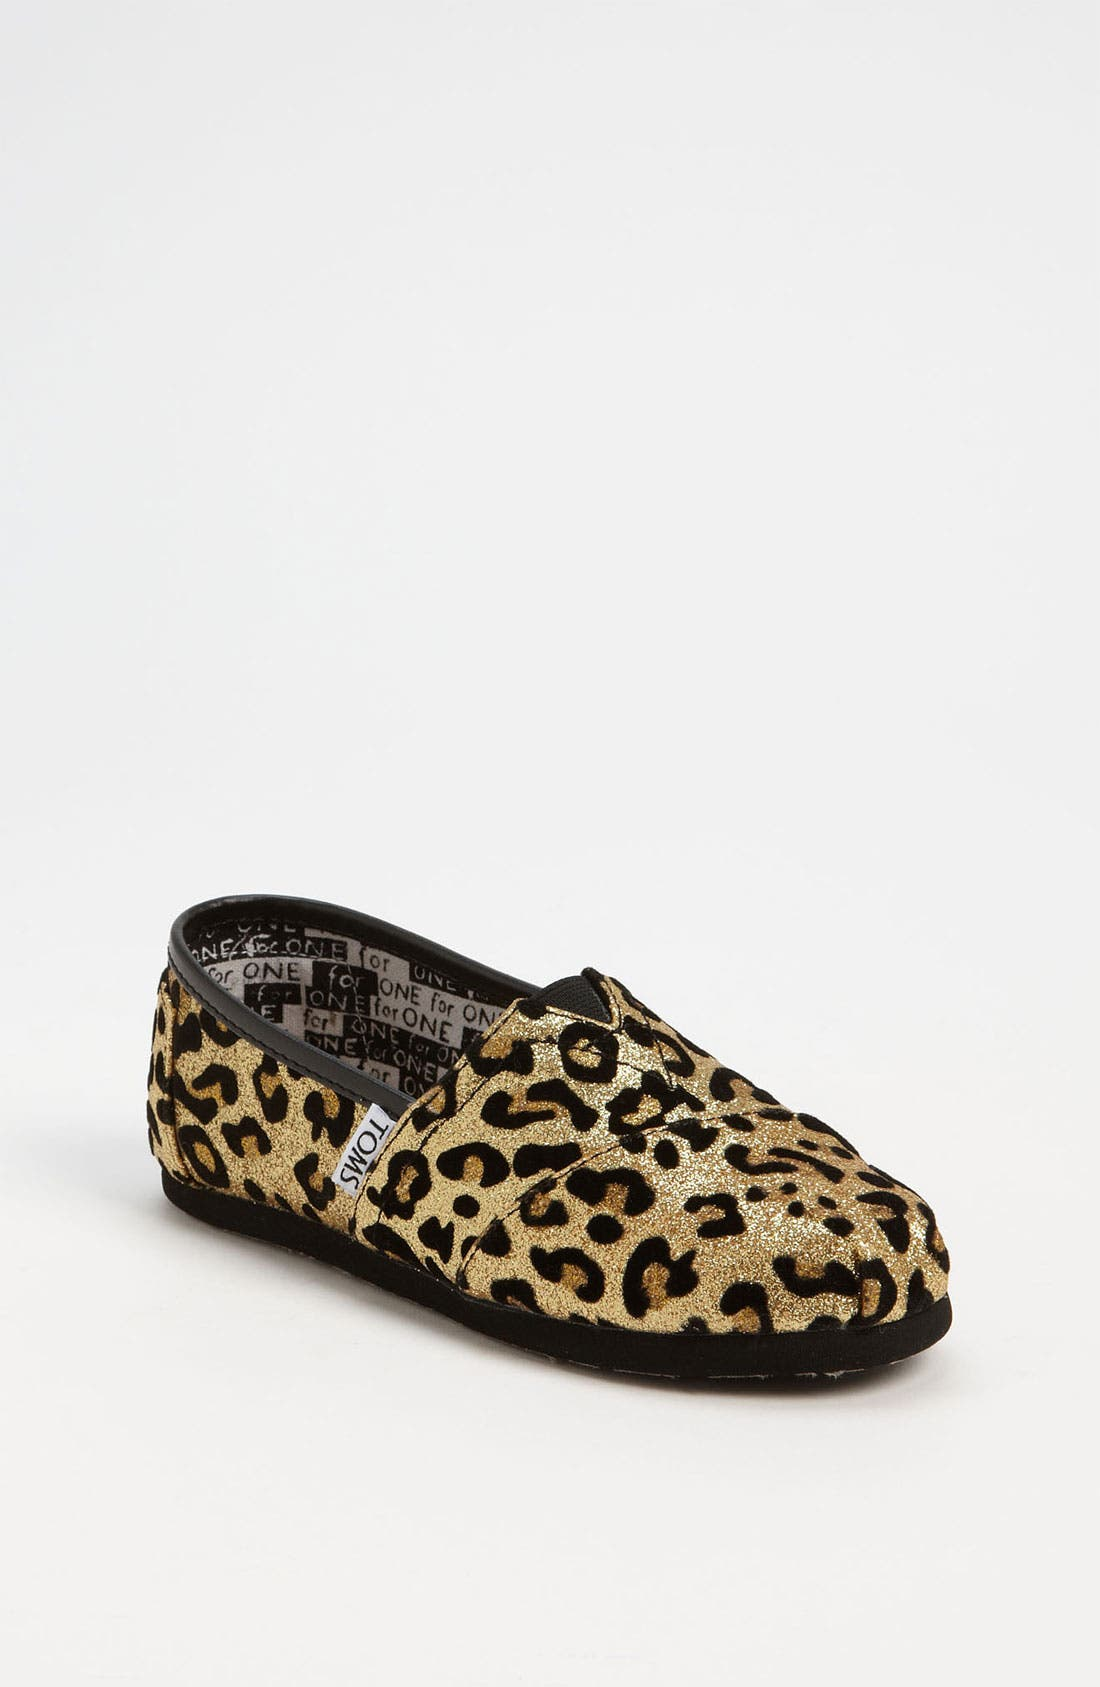 Alternate Image 1 Selected - TOMS 'Classic Youth - Glitter' Print Slip-On (Toddler, Little Kid & Big Kid)(Nordstrom Exclusive)